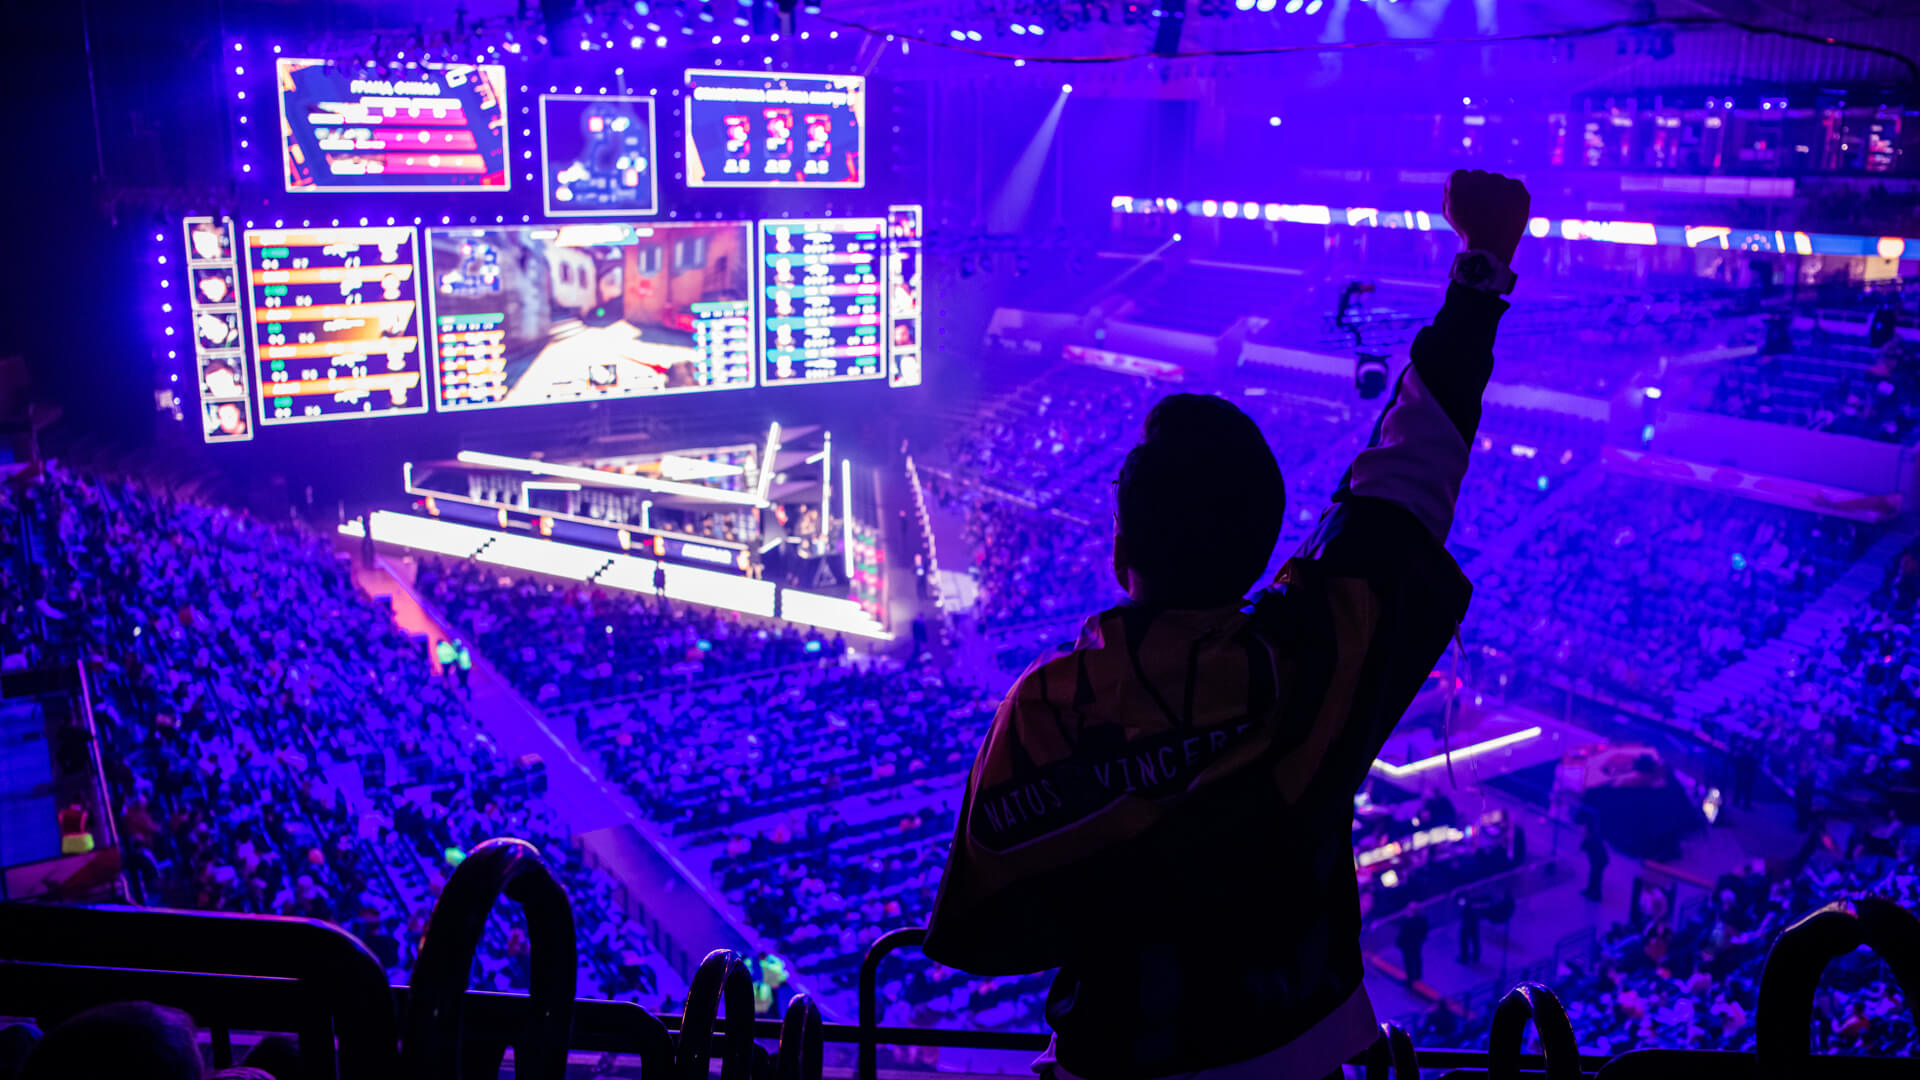 Overwatch Fortnite And 22 Of The Most Lucrative Esports Games In The World Gobanking